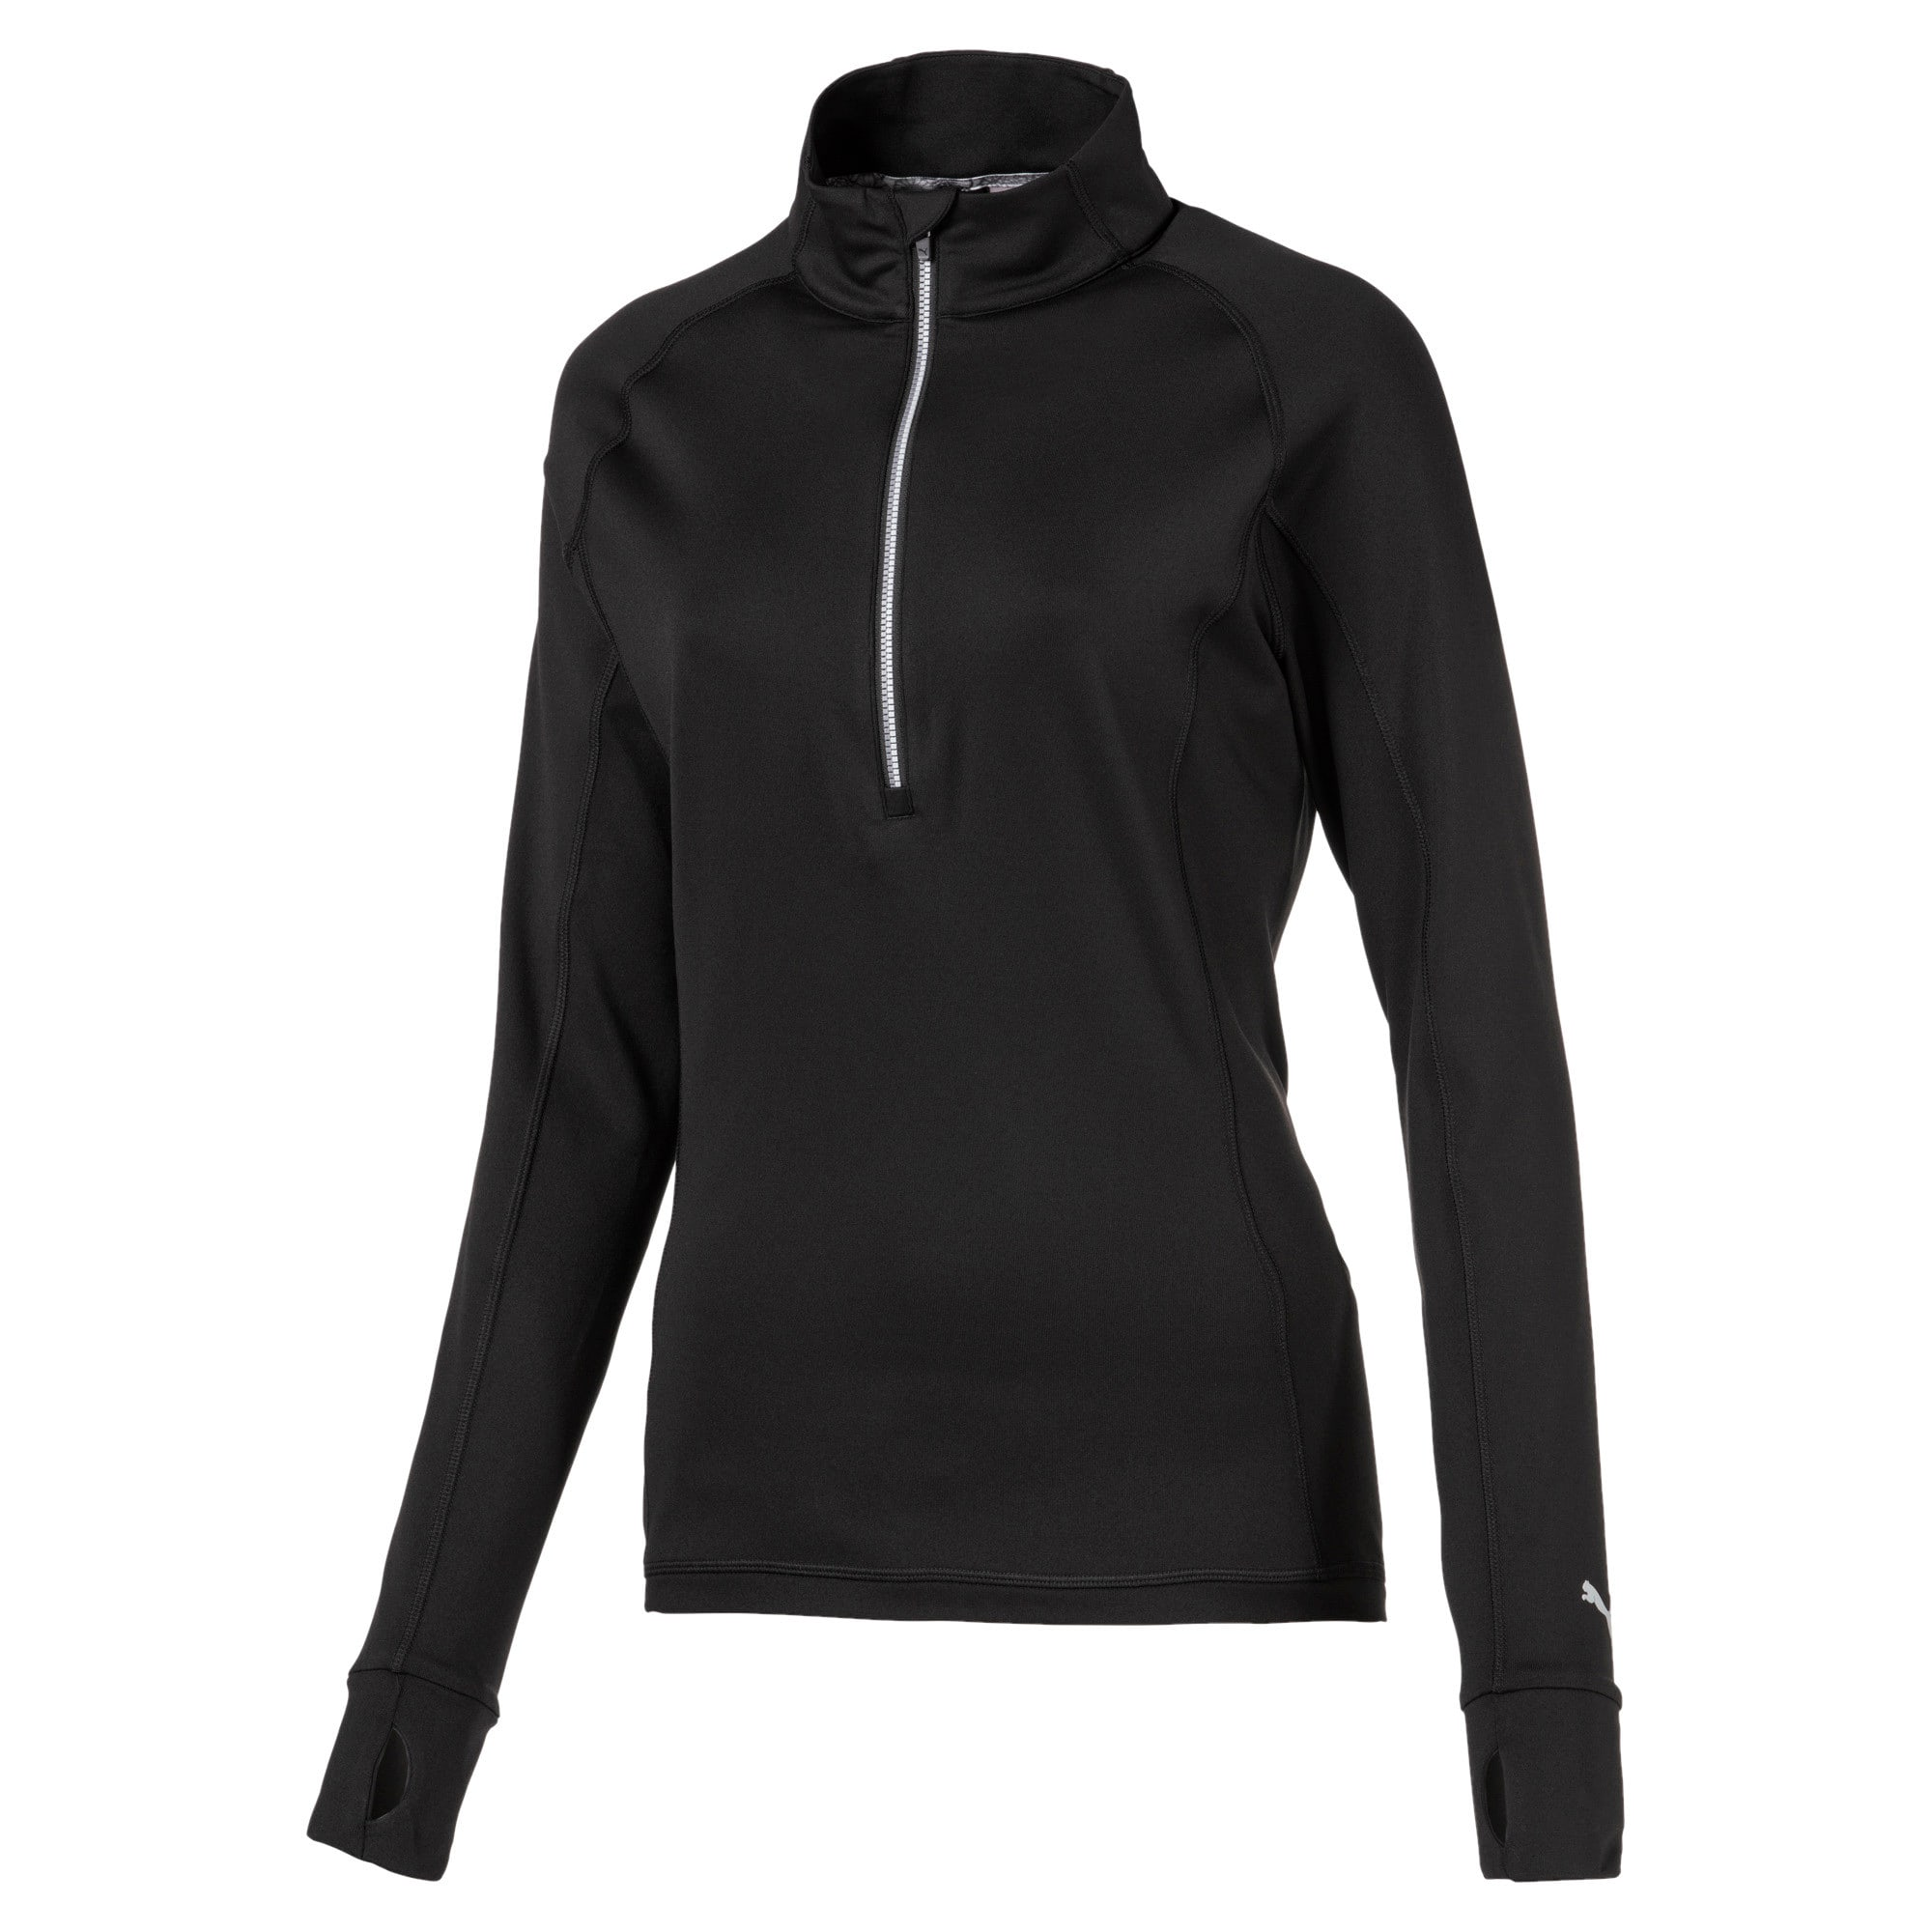 Rotation 1/4 Zip Women's Golf Pullover, Puma Black, large